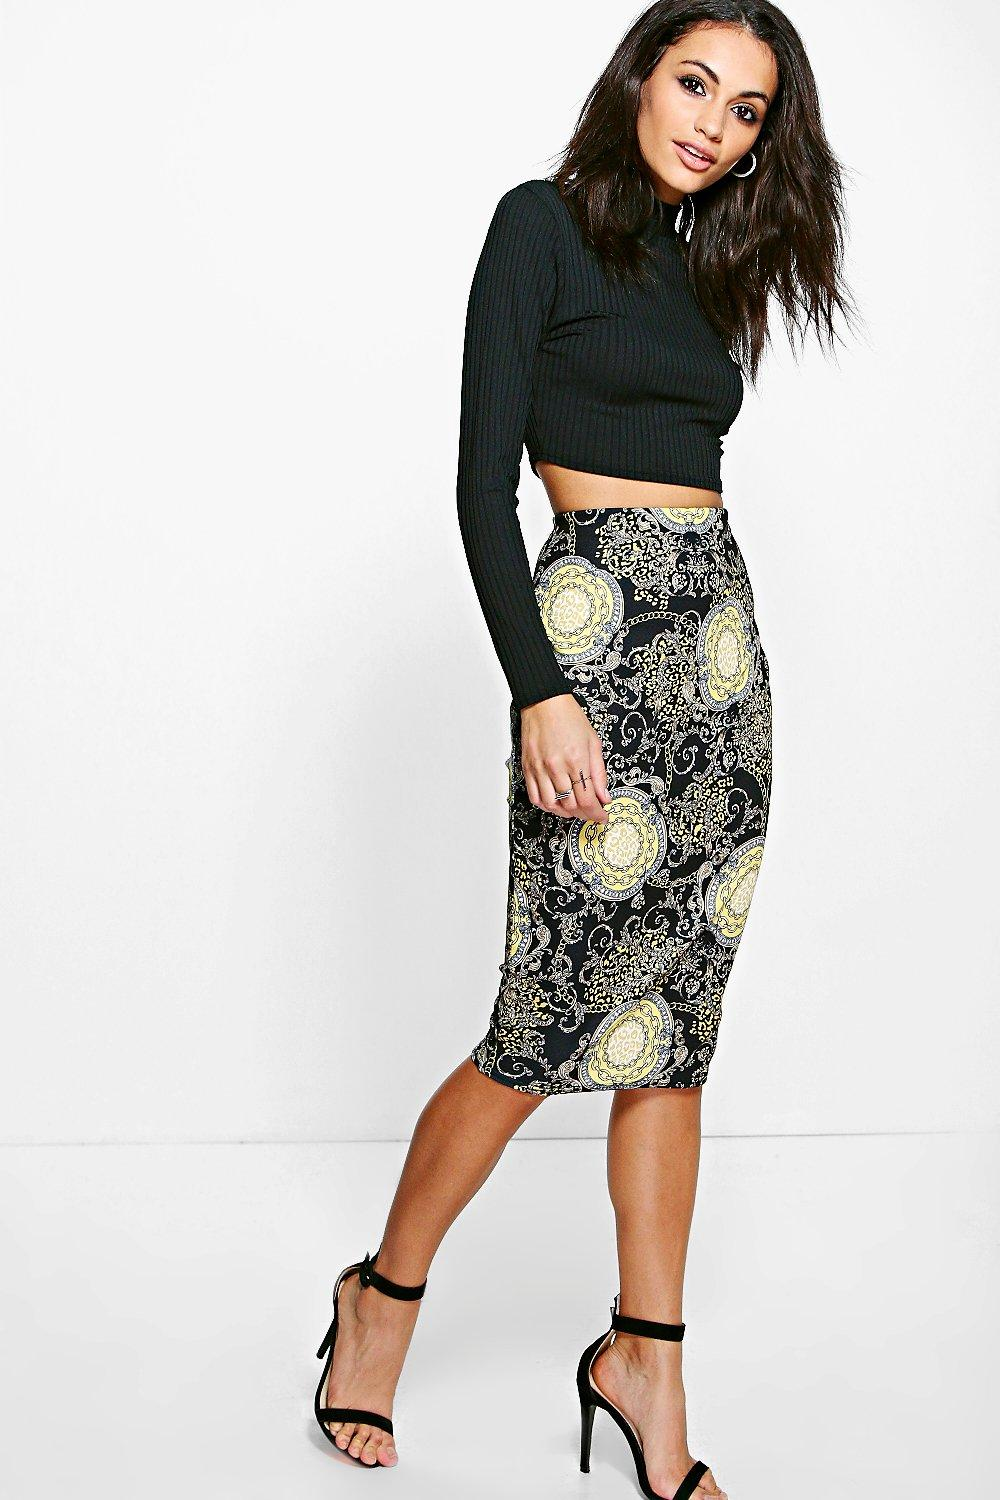 Giselle Elaborate Gold Chain Print Midi Skirt